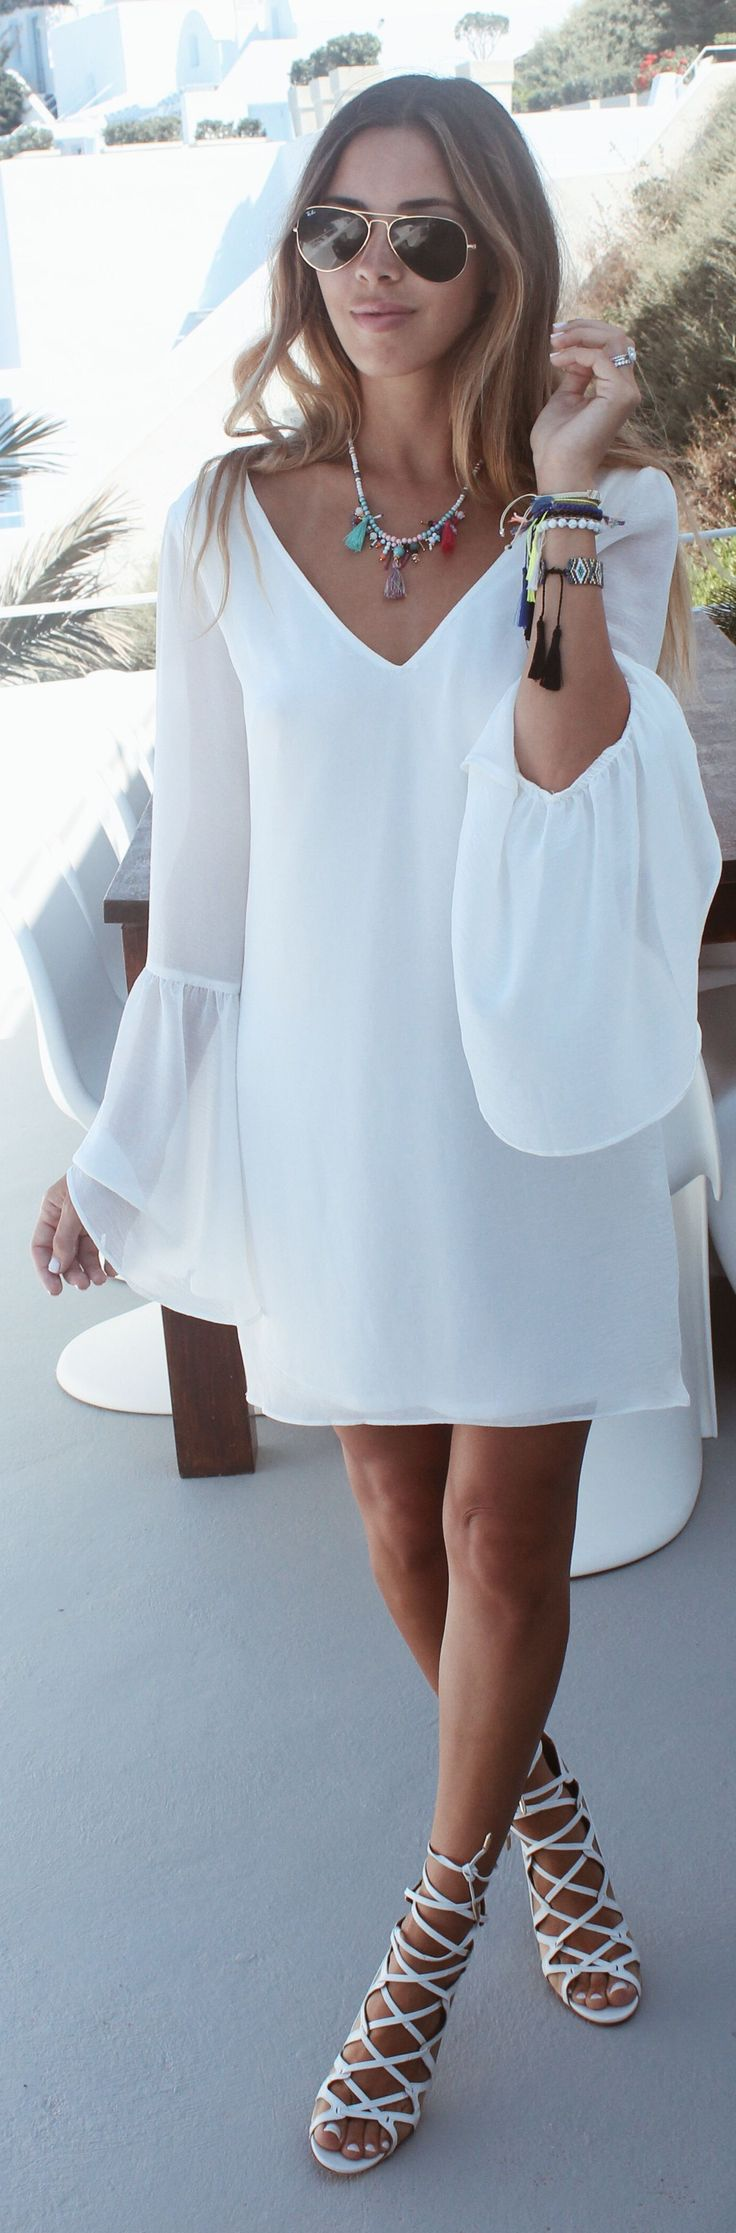 Sivan Ayla Bell Sleeve White Shift Dress Fall Inspo                                                                             Source